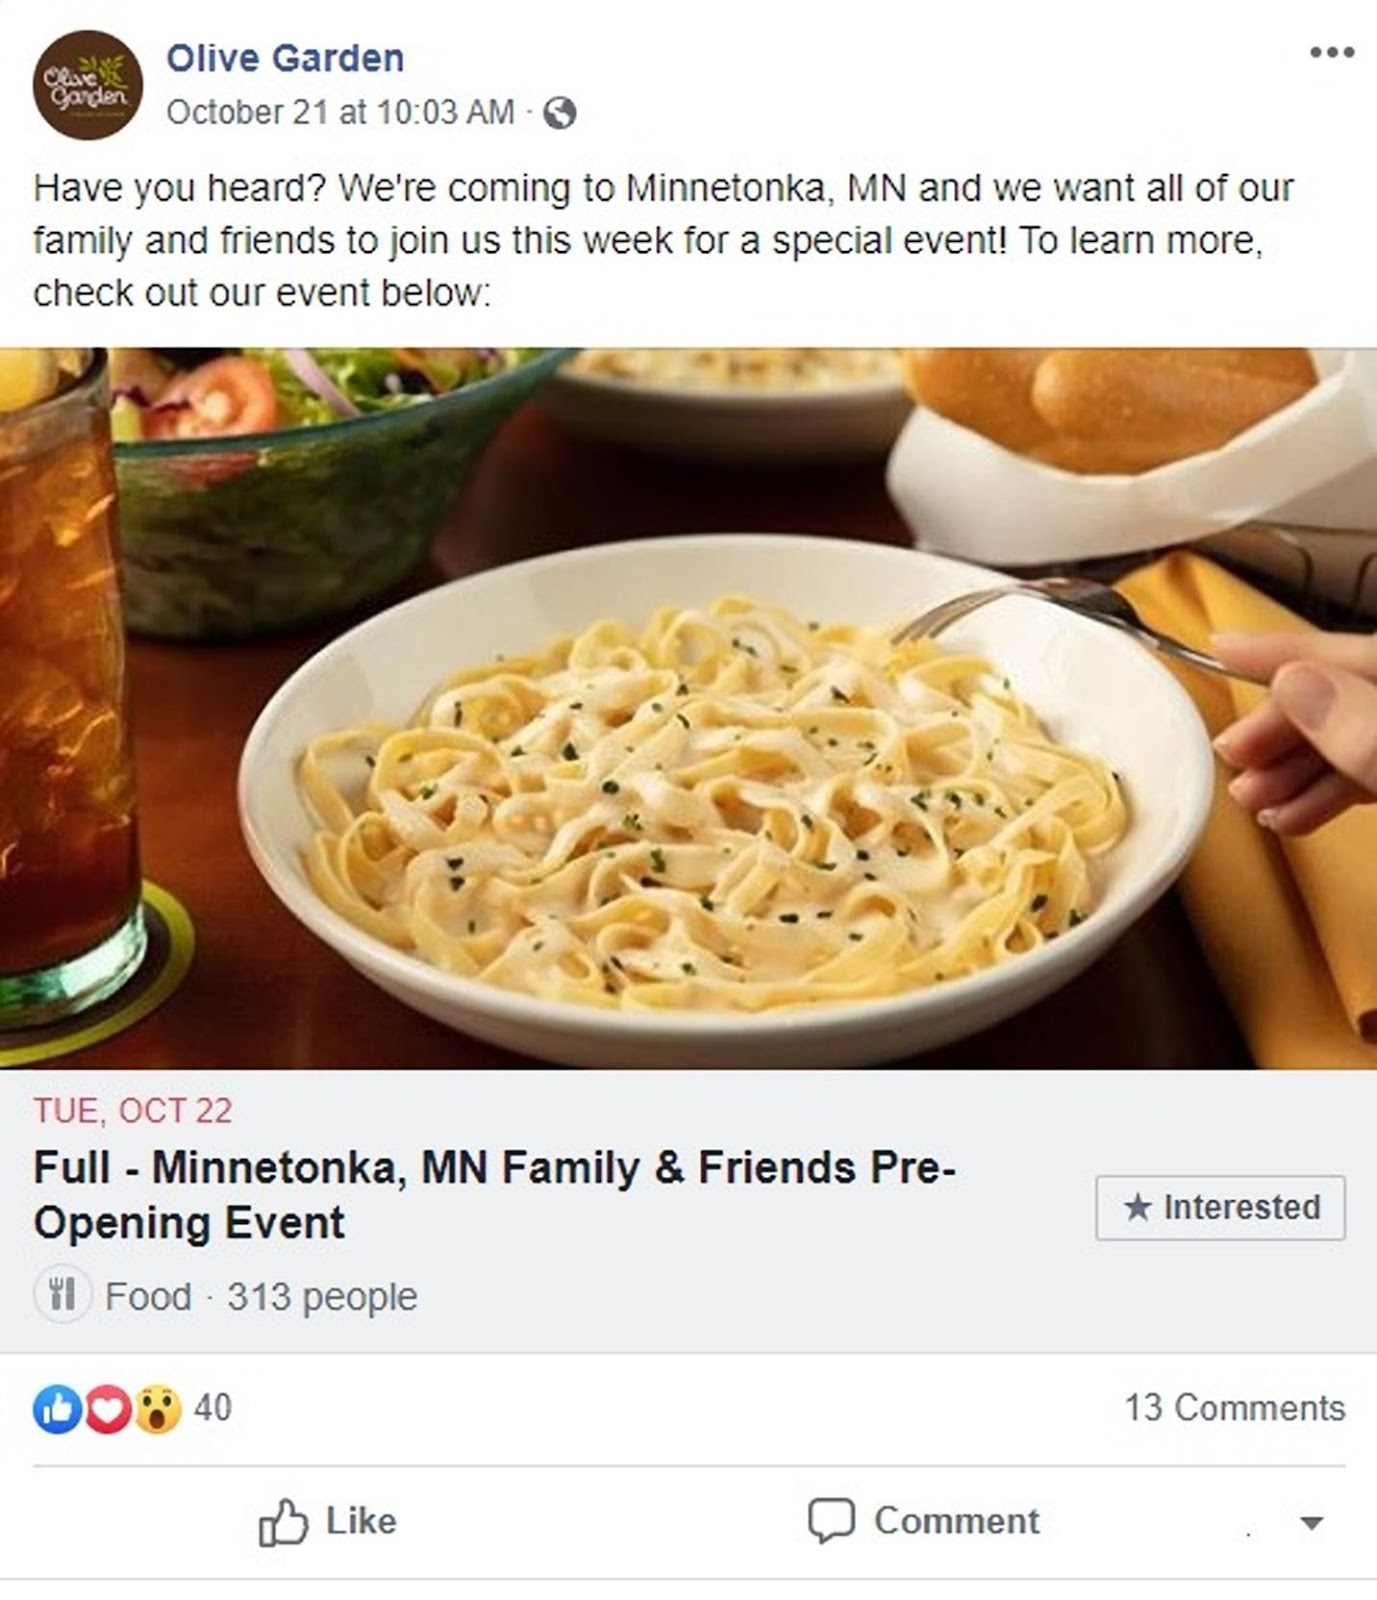 Olive Garden facebook page example